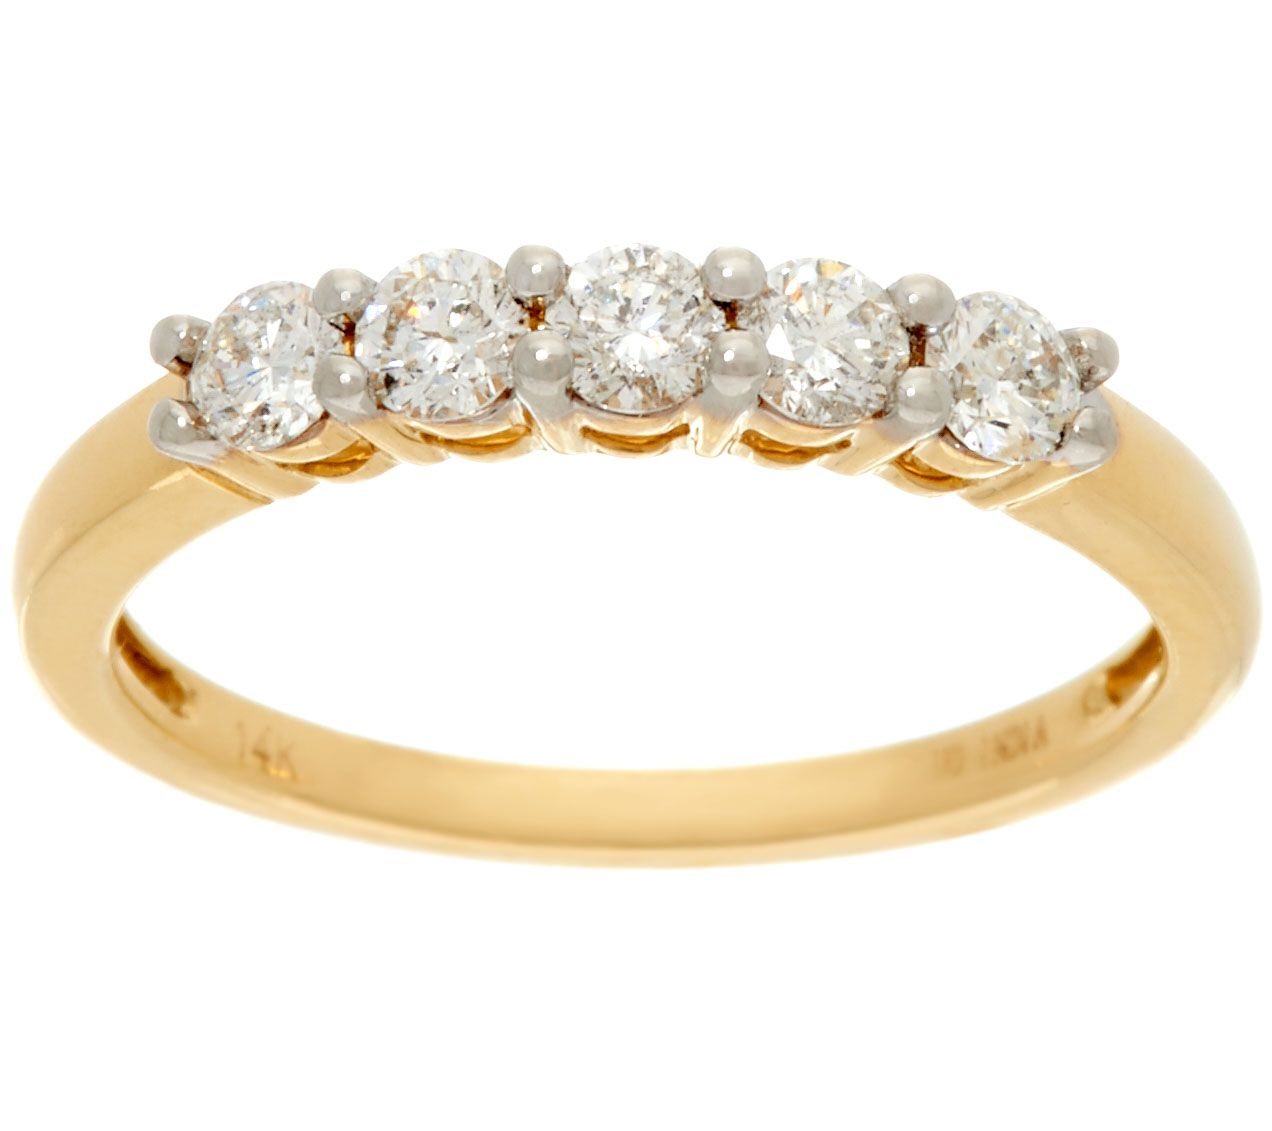 Diamond Rings Special Affections Advance 2010 Fnt 59 Mb